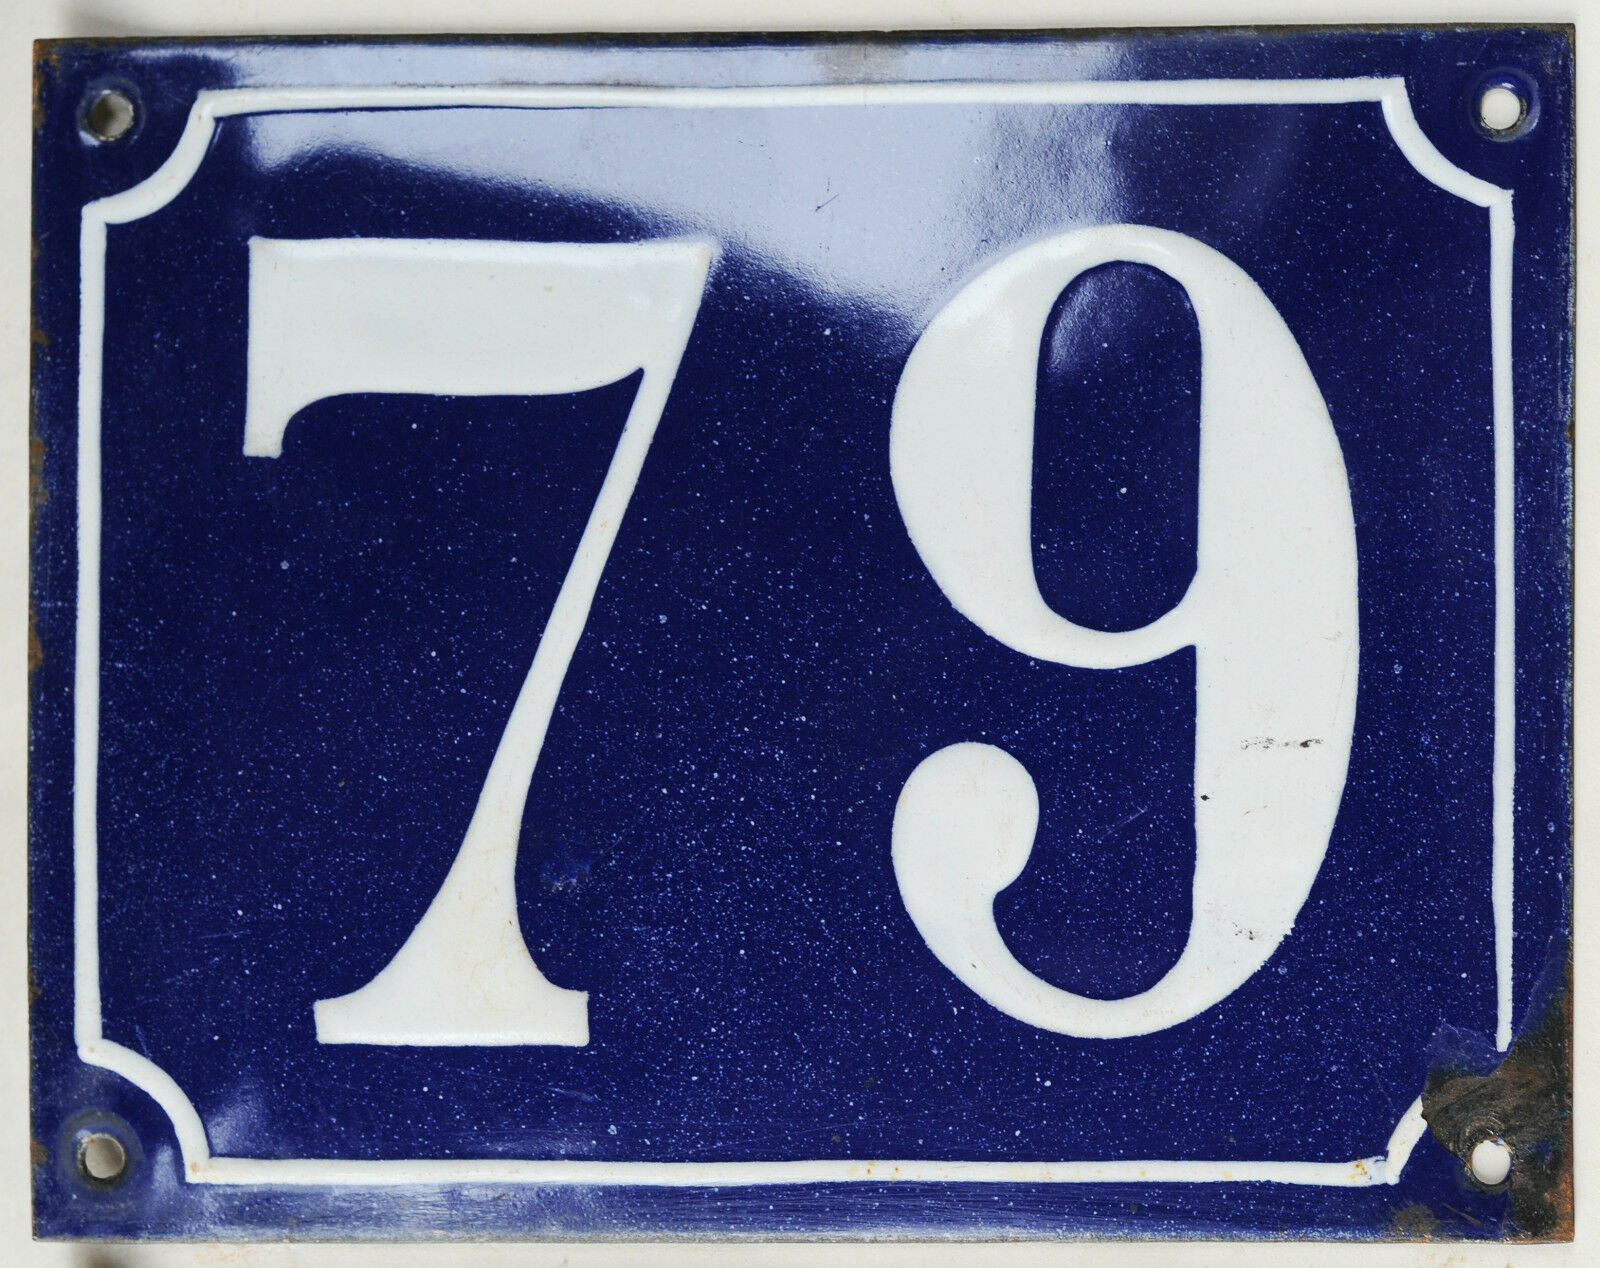 Old large blue French house number 79 door gate plaque enamel steel metal sign